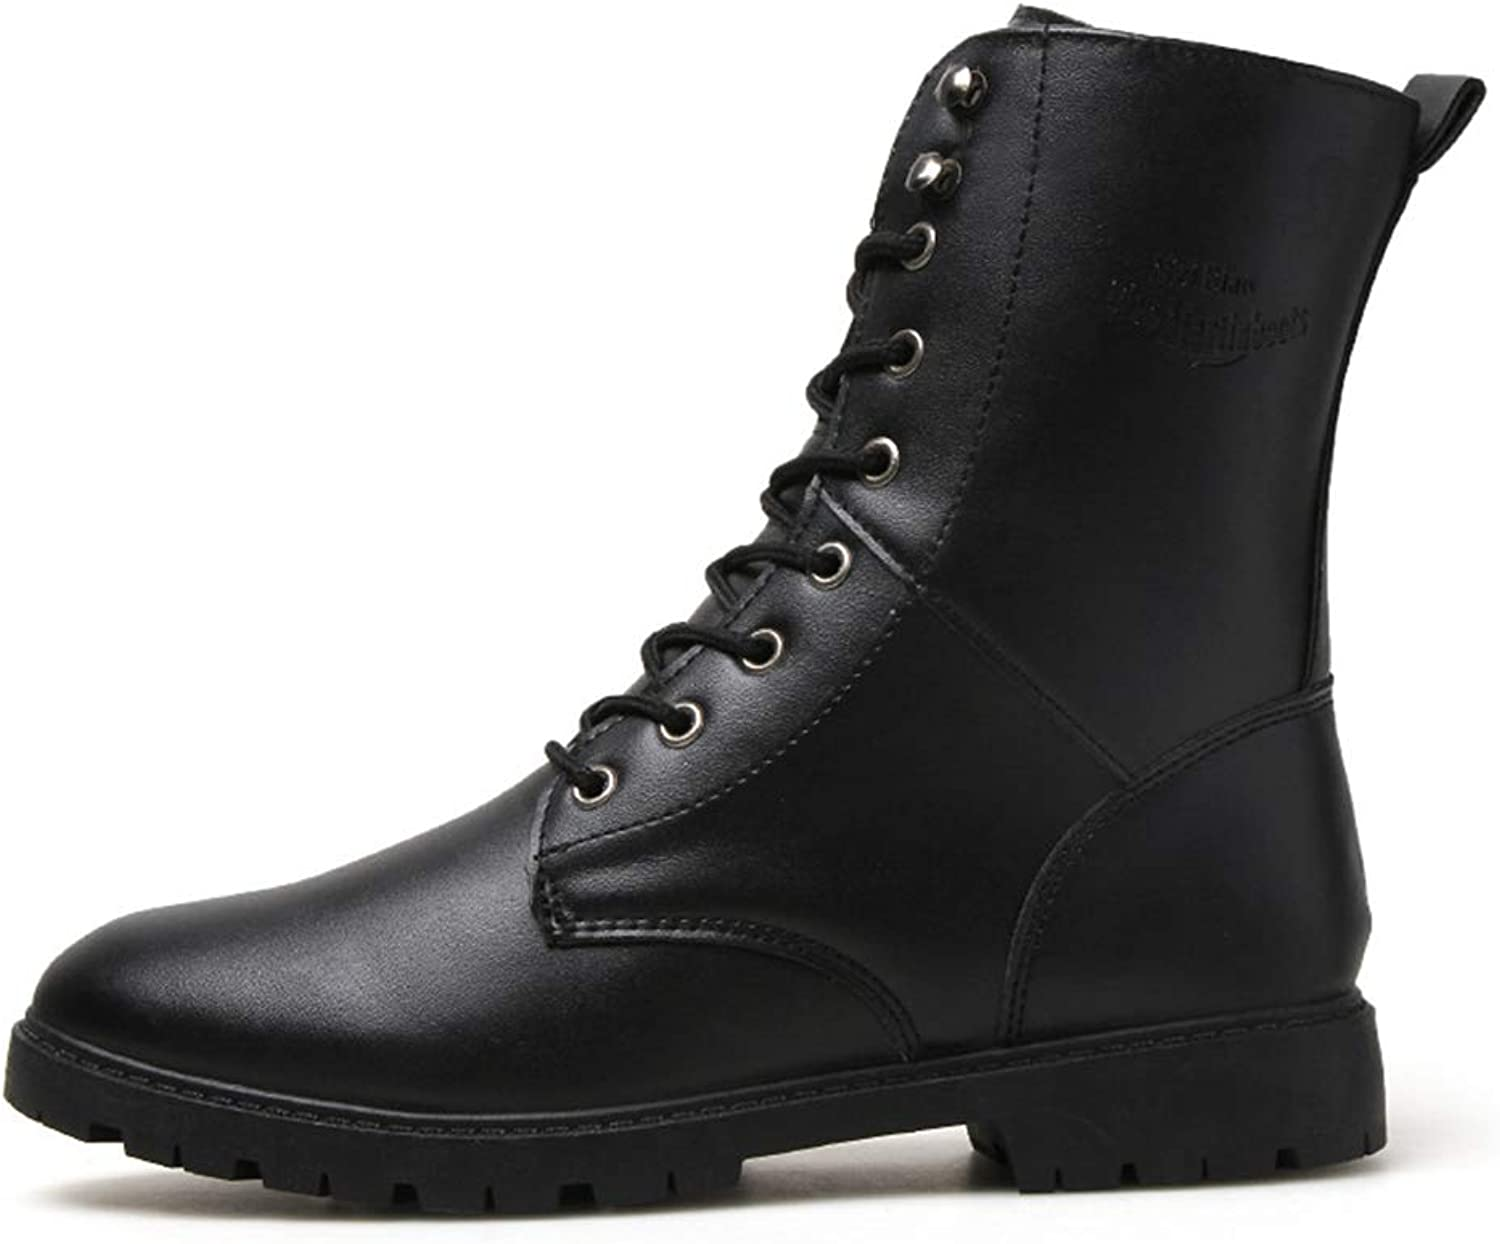 Men's shoes Men's shoes, Mens Casual shoes Men's Booties Ankle Boots Fashion Military Boots Winter Men Leather Boots Implicit Increase Special Boots Men's Fashion Boots (color   Black, Size   42)